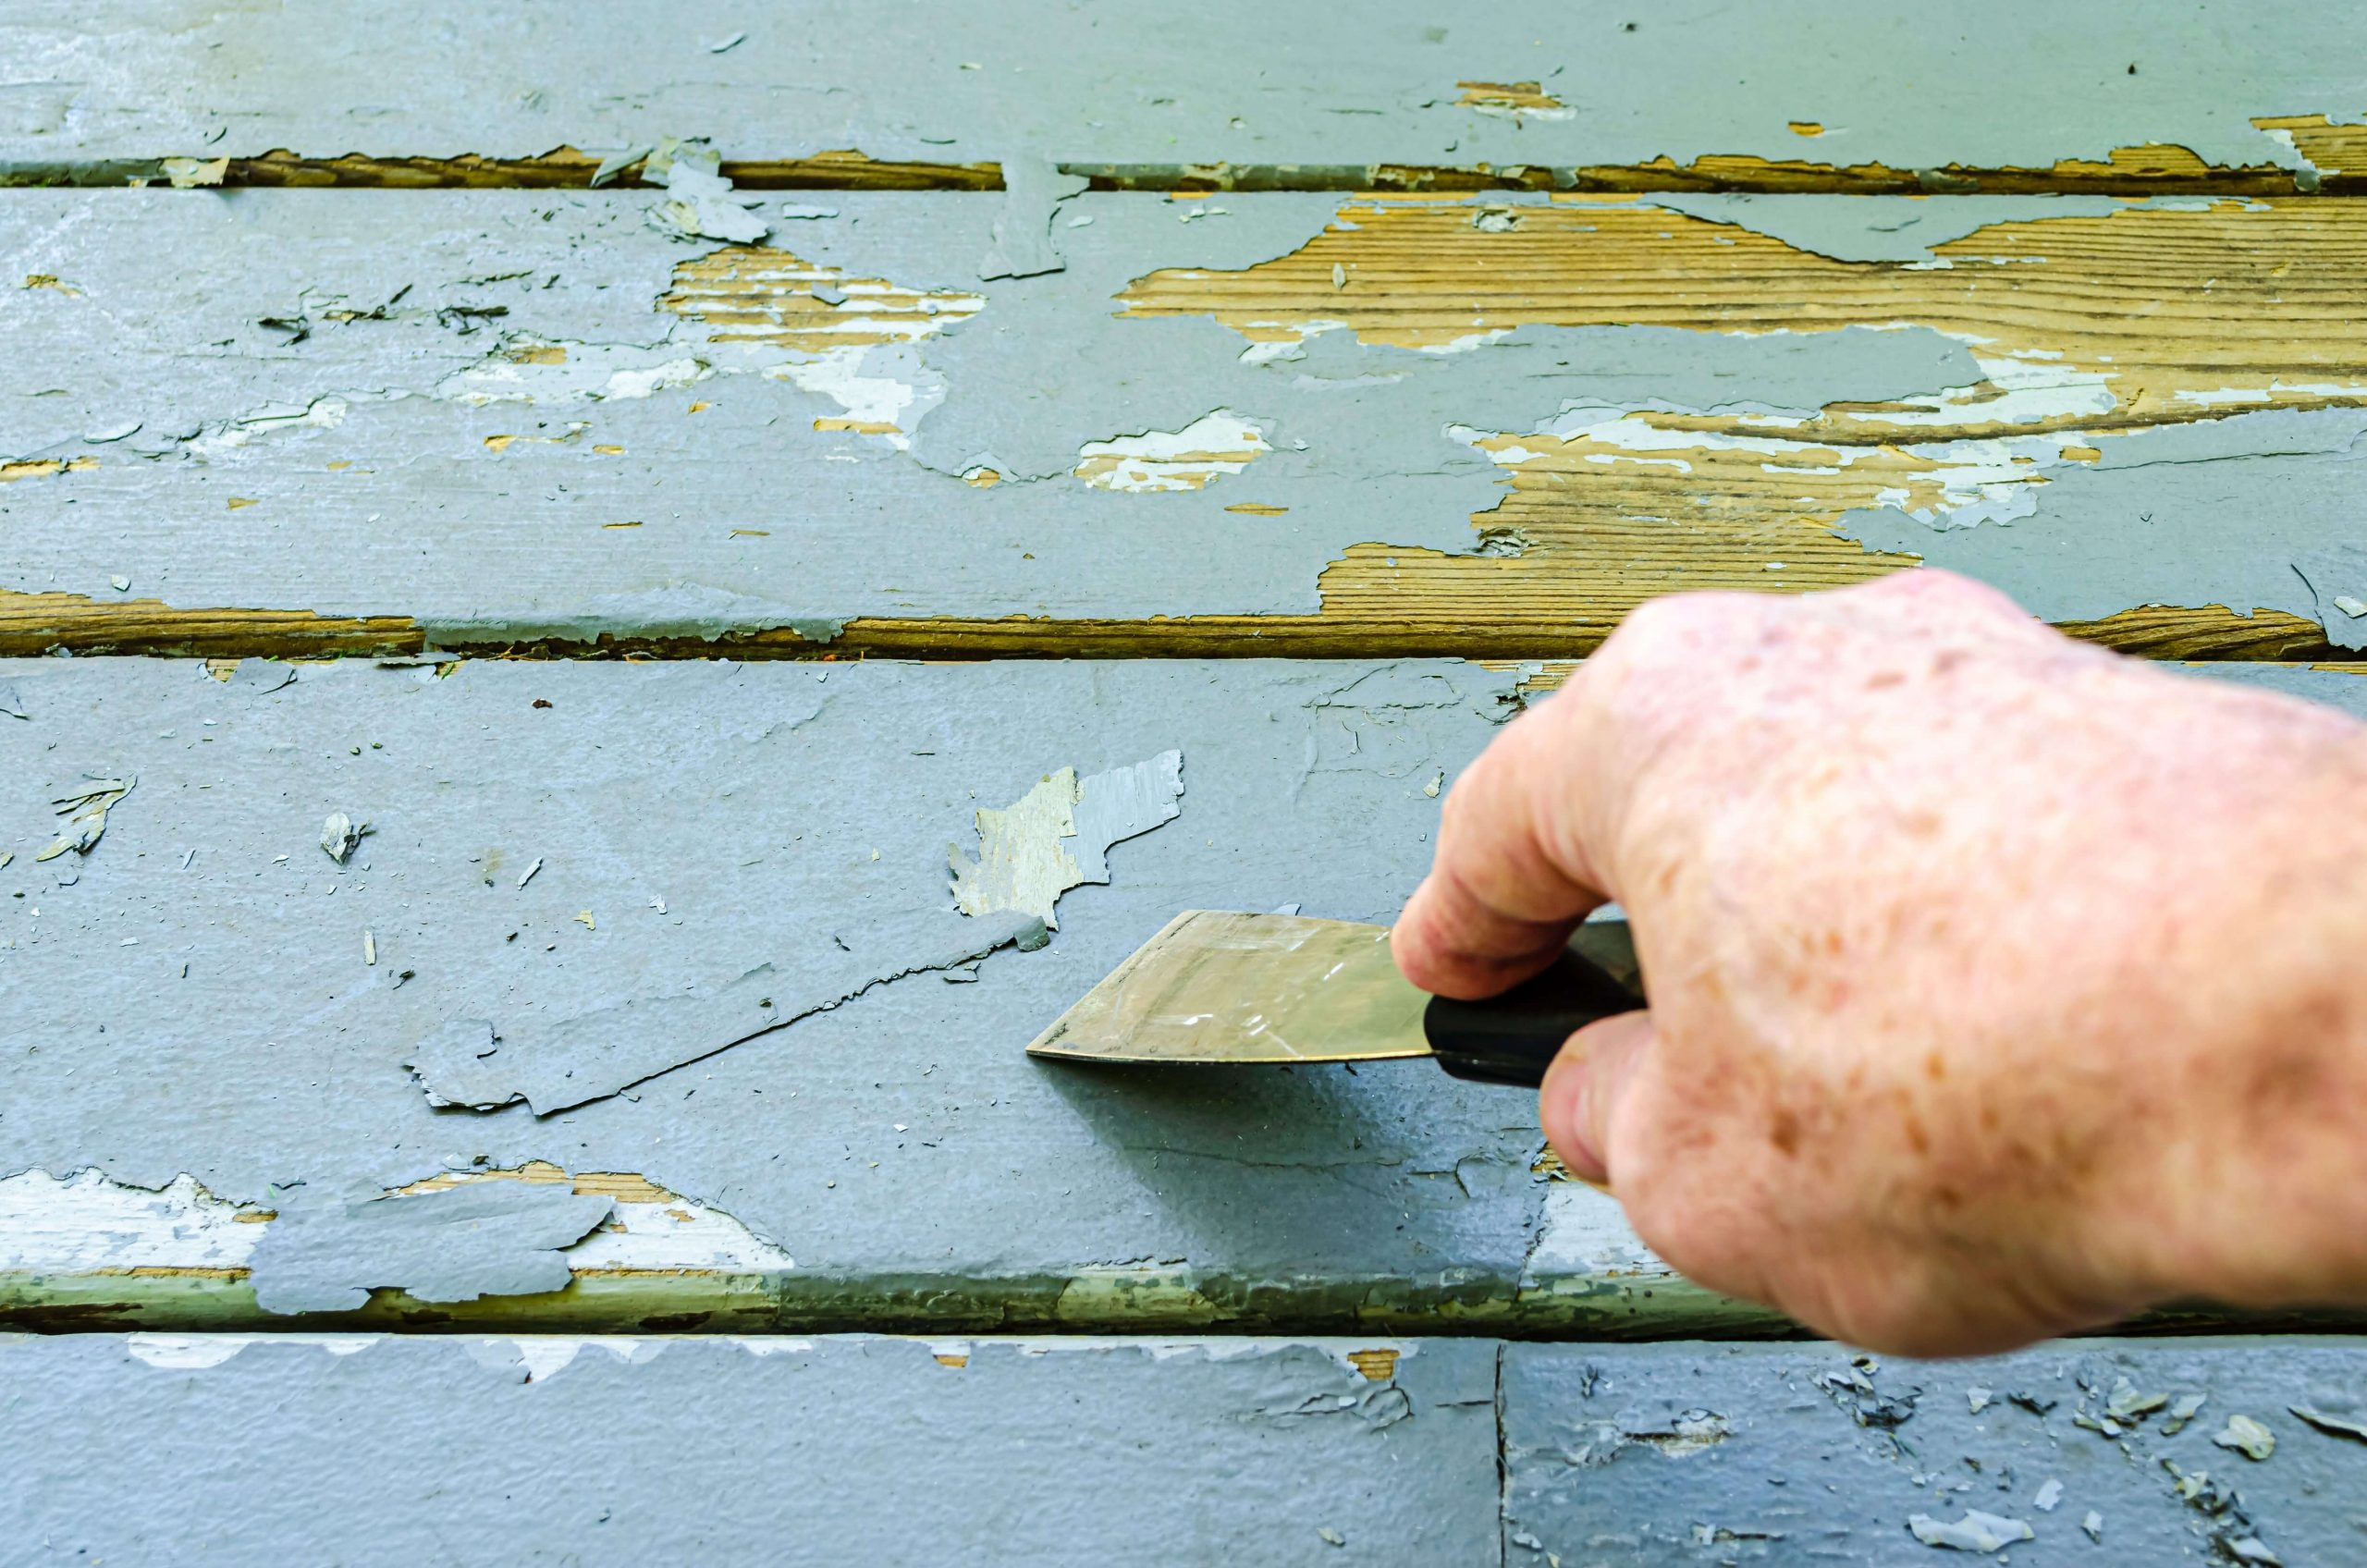 HOW TO PAINT A GARAGE DOOR - CLEAR THE SURFACE